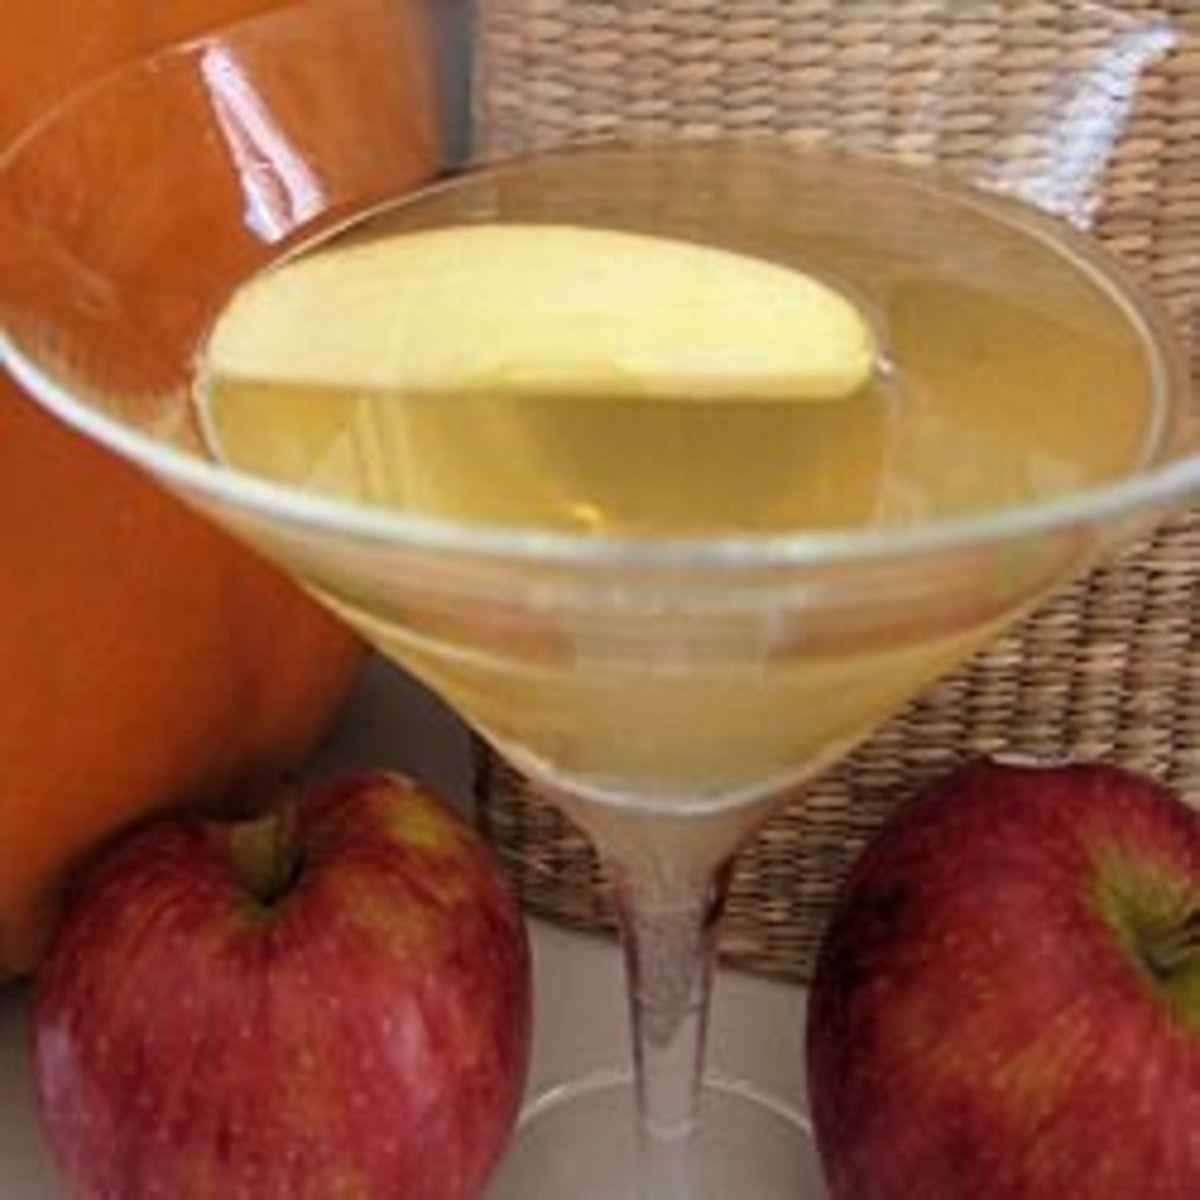 The Apple Pie martini is a nice twist on the usual Appletini.